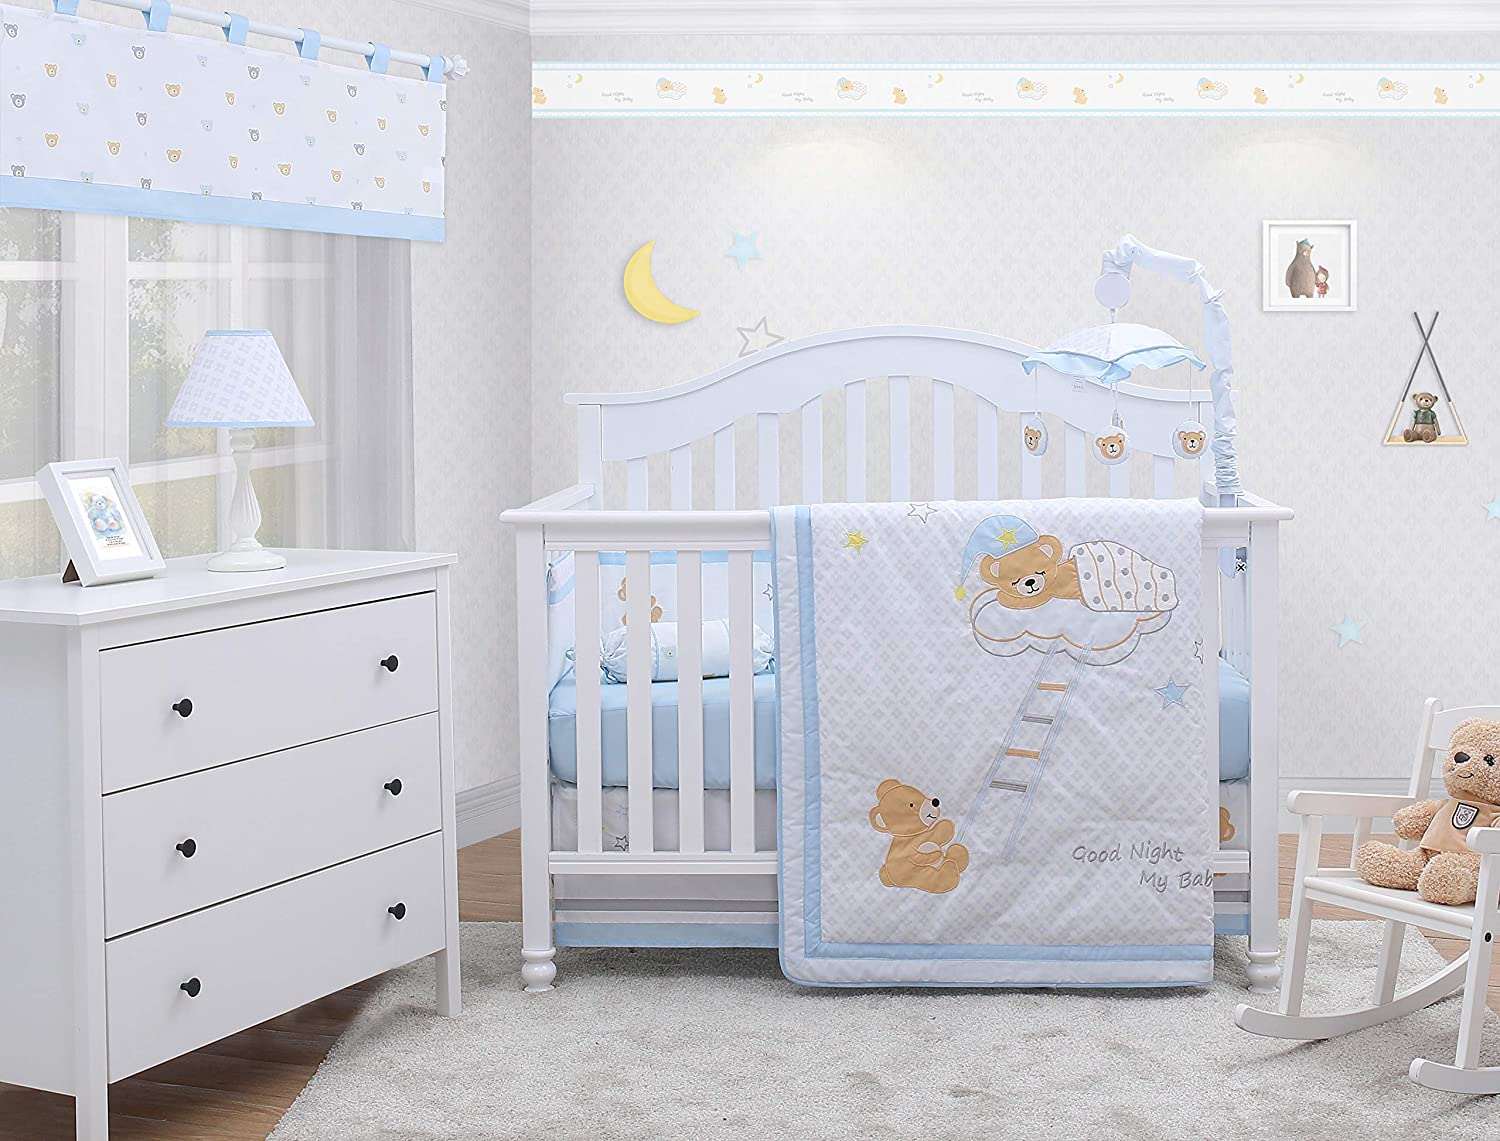 OptimaBaby 6 Piece Crib Bedding Set Swee Super sale period limited Gray Blue SALENEW very popular! and White -